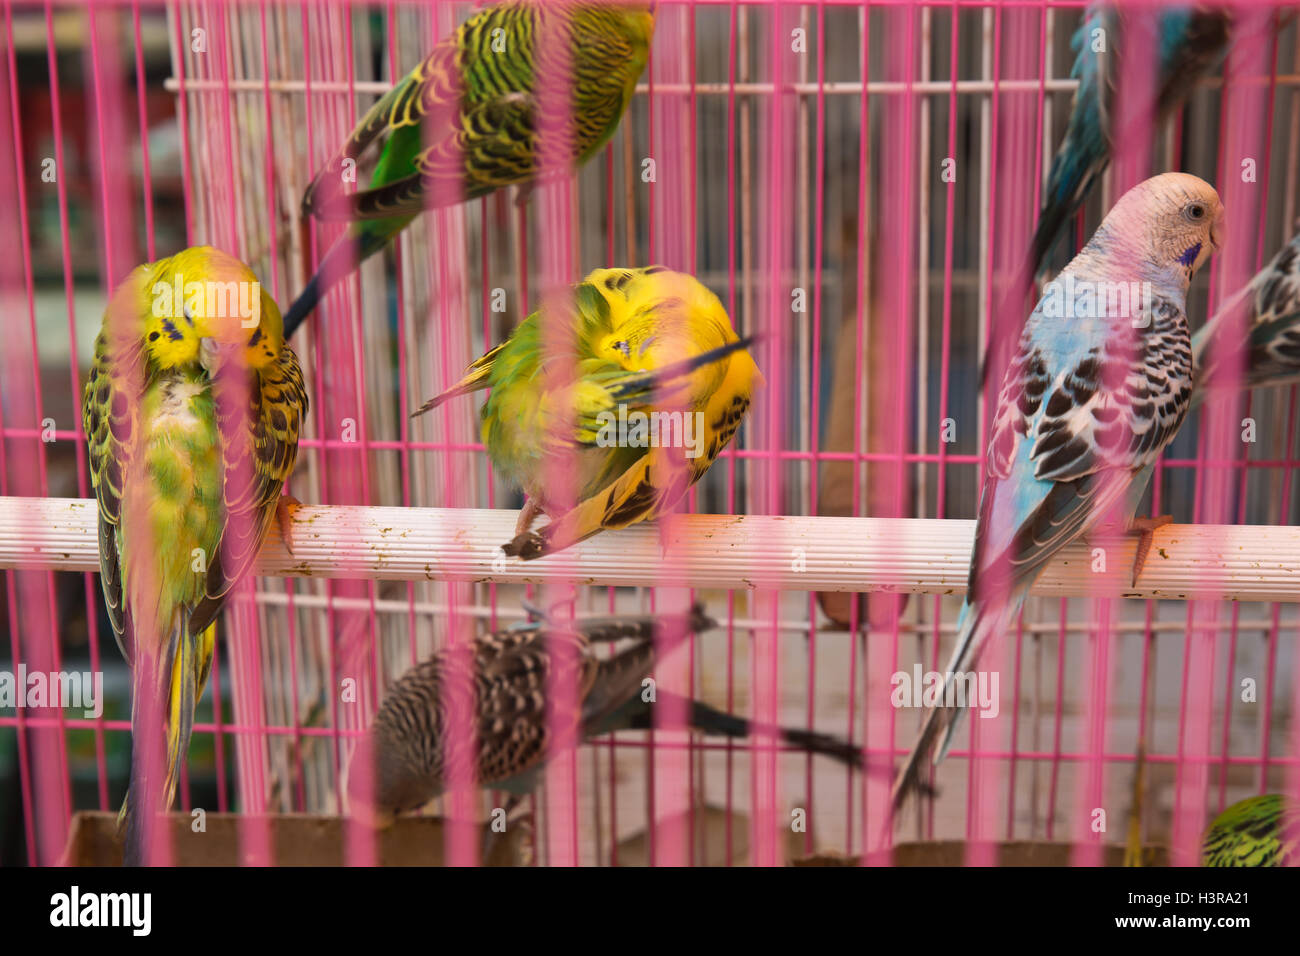 Birds in a cage - Stock Image